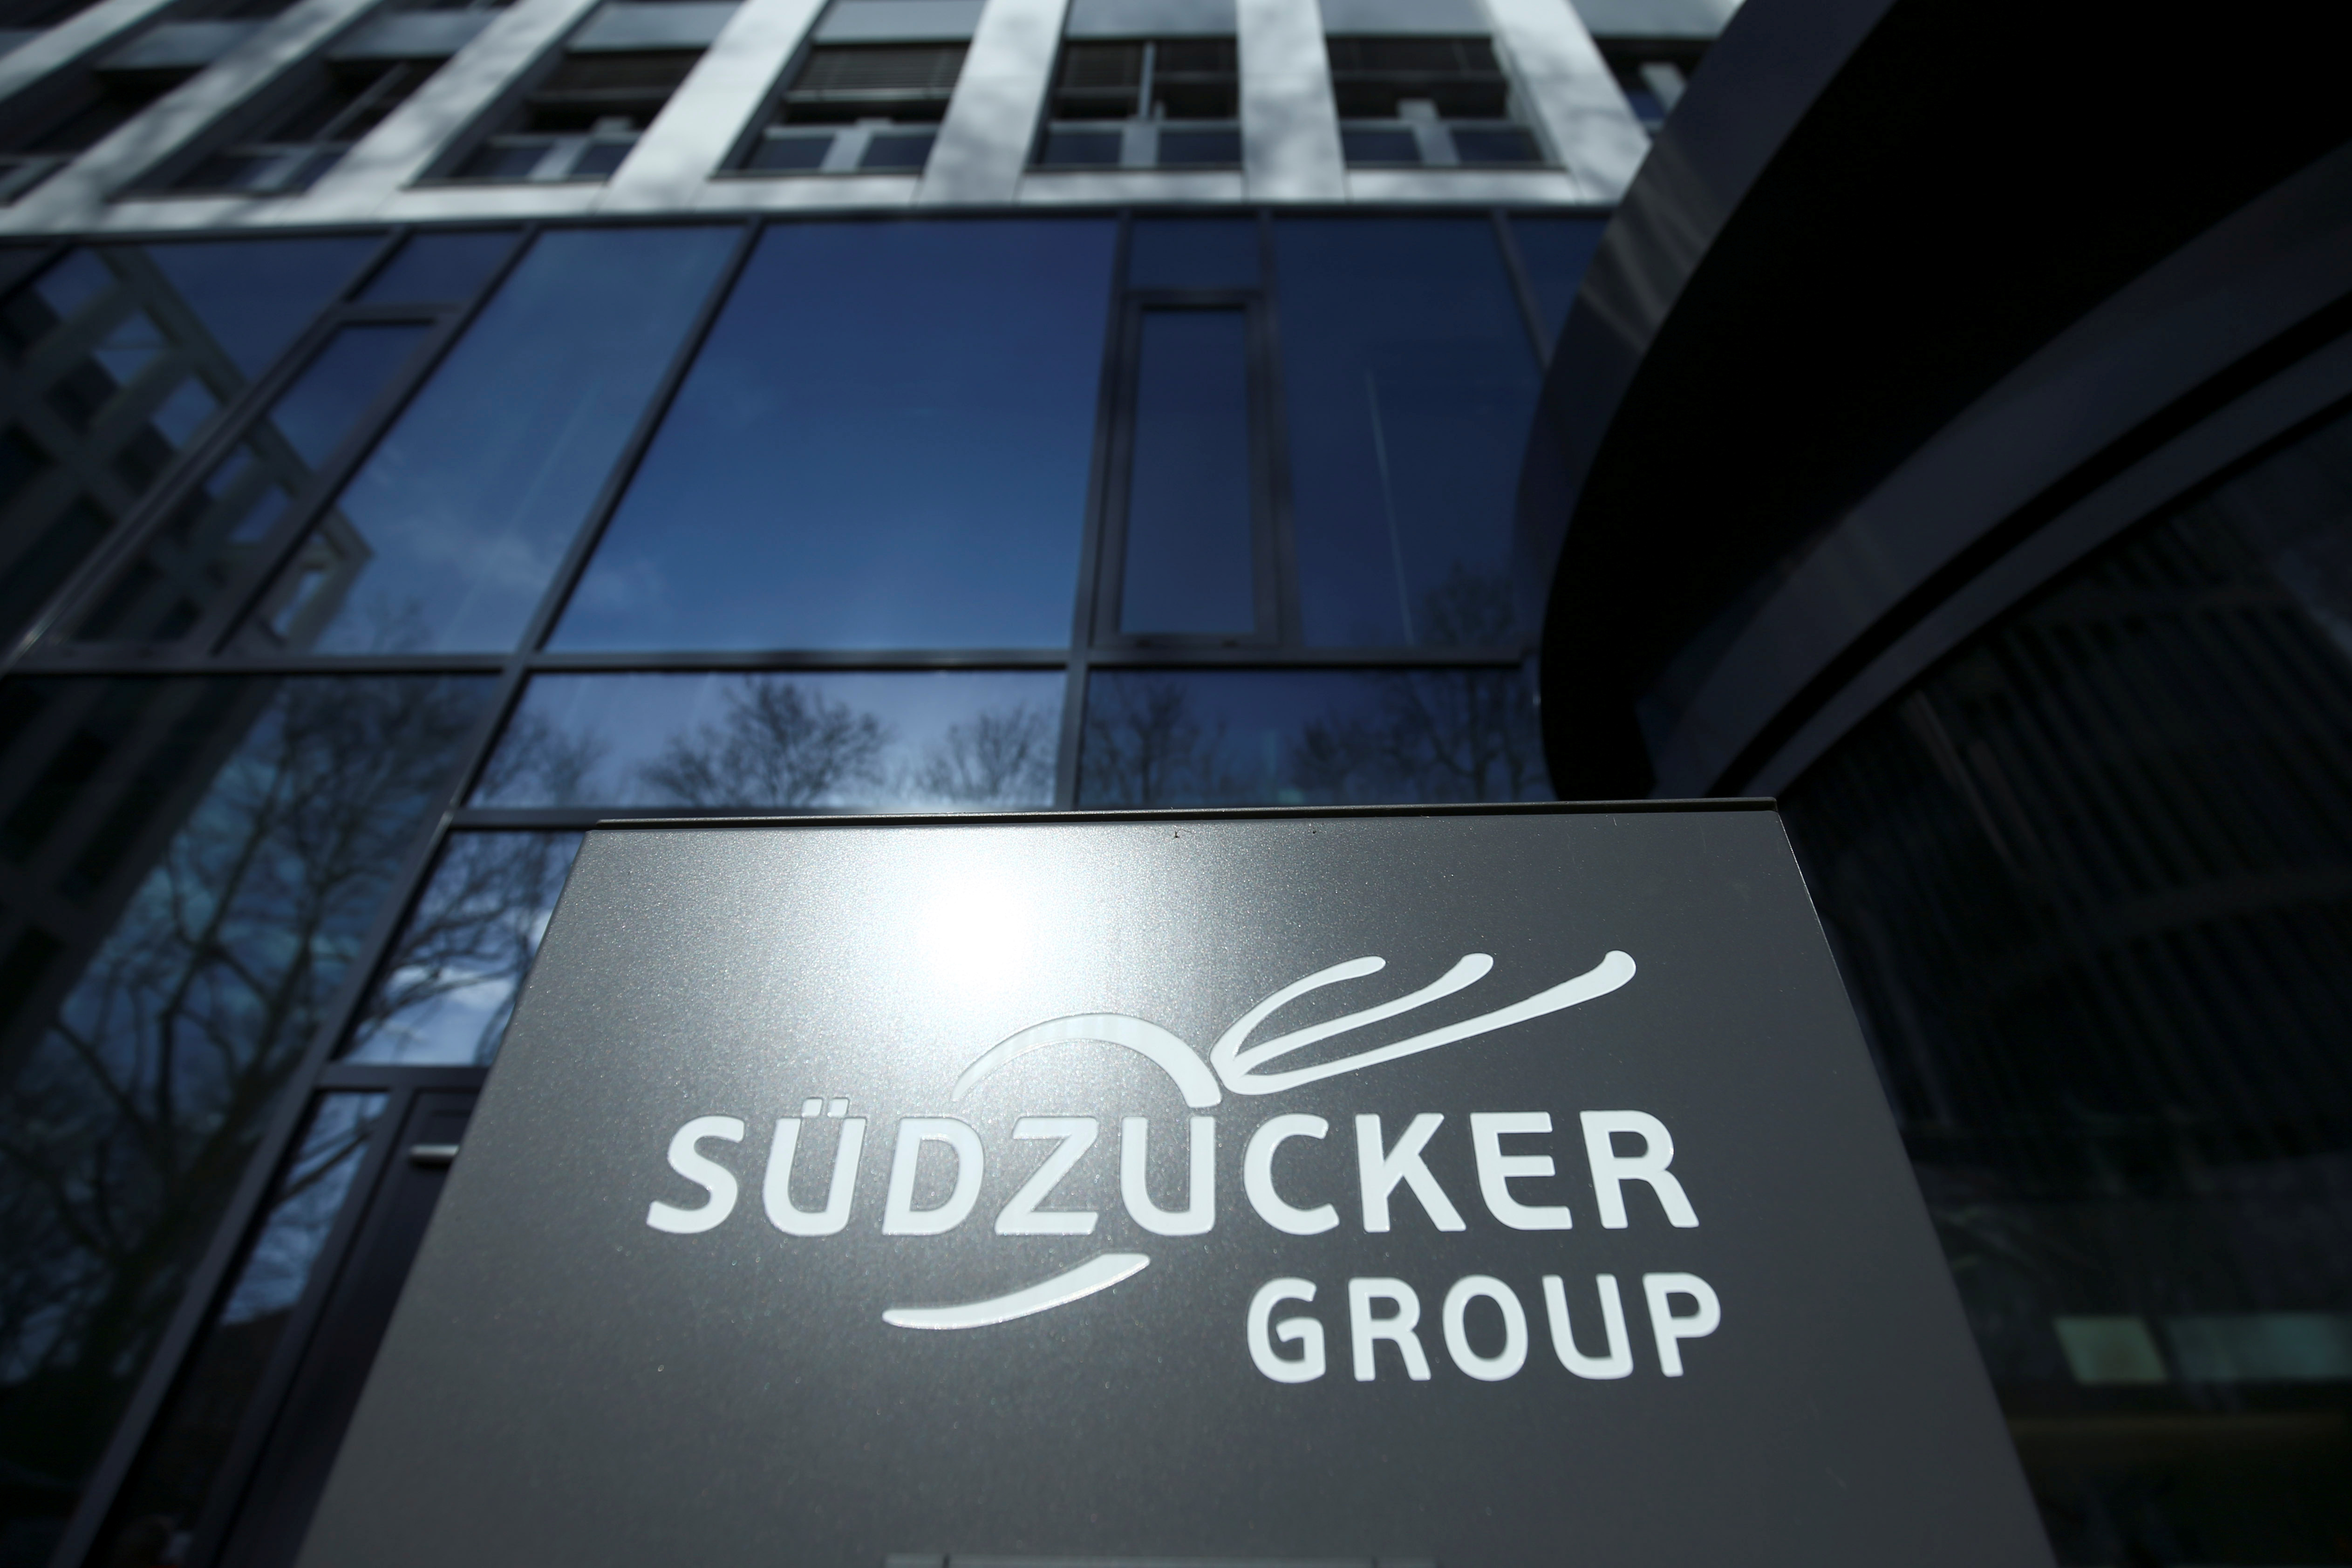 A company logo of Suedzucker Group is pictured at the headquarters in Mannheim, Germany March 12, 2019. REUTERS/Ralph Orlowski/Files